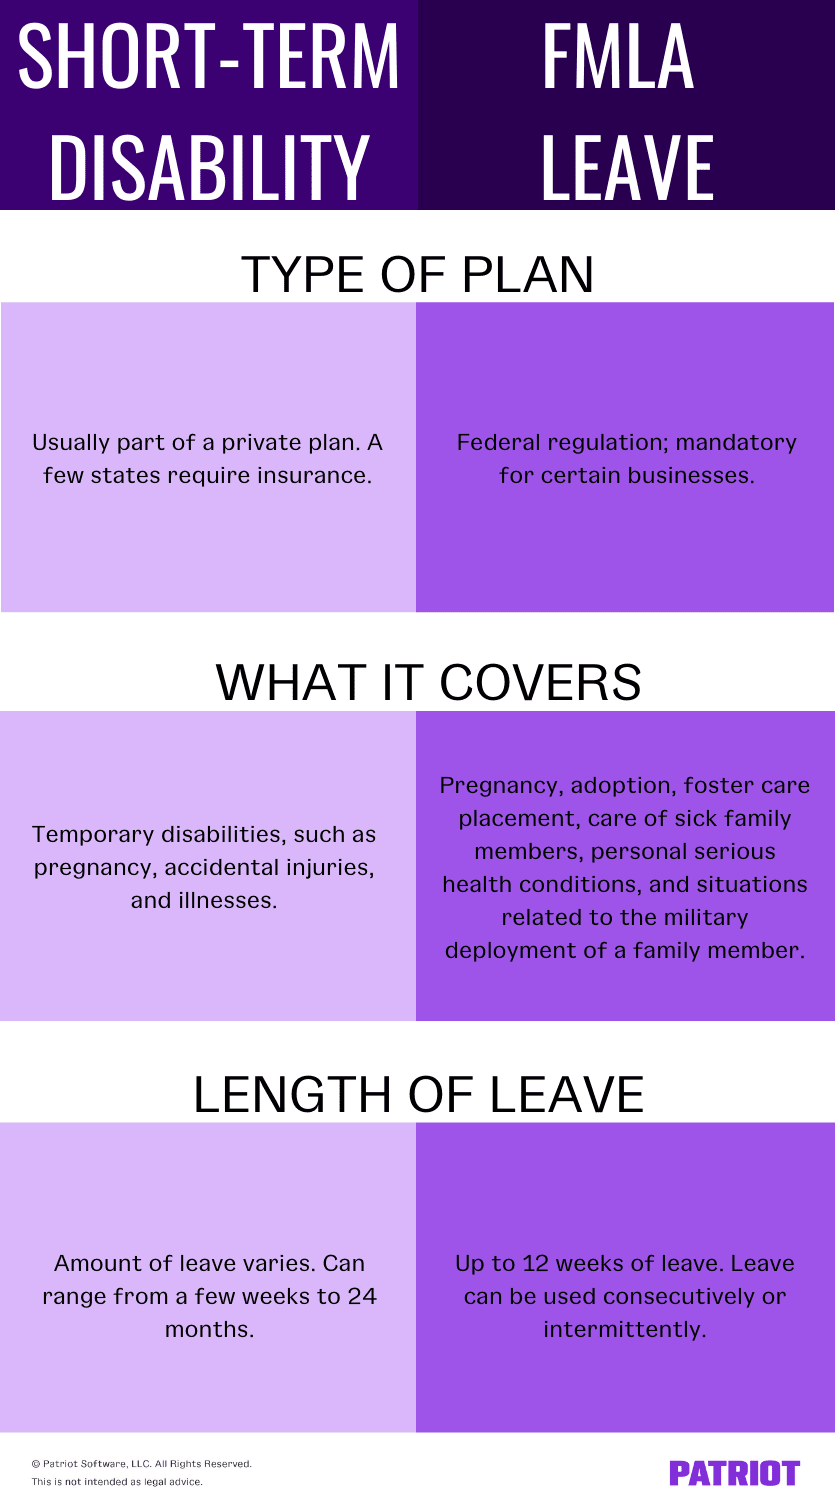 short-term disability vs. fmla leave chart comparing types of plans, what they cover, and length of leave.